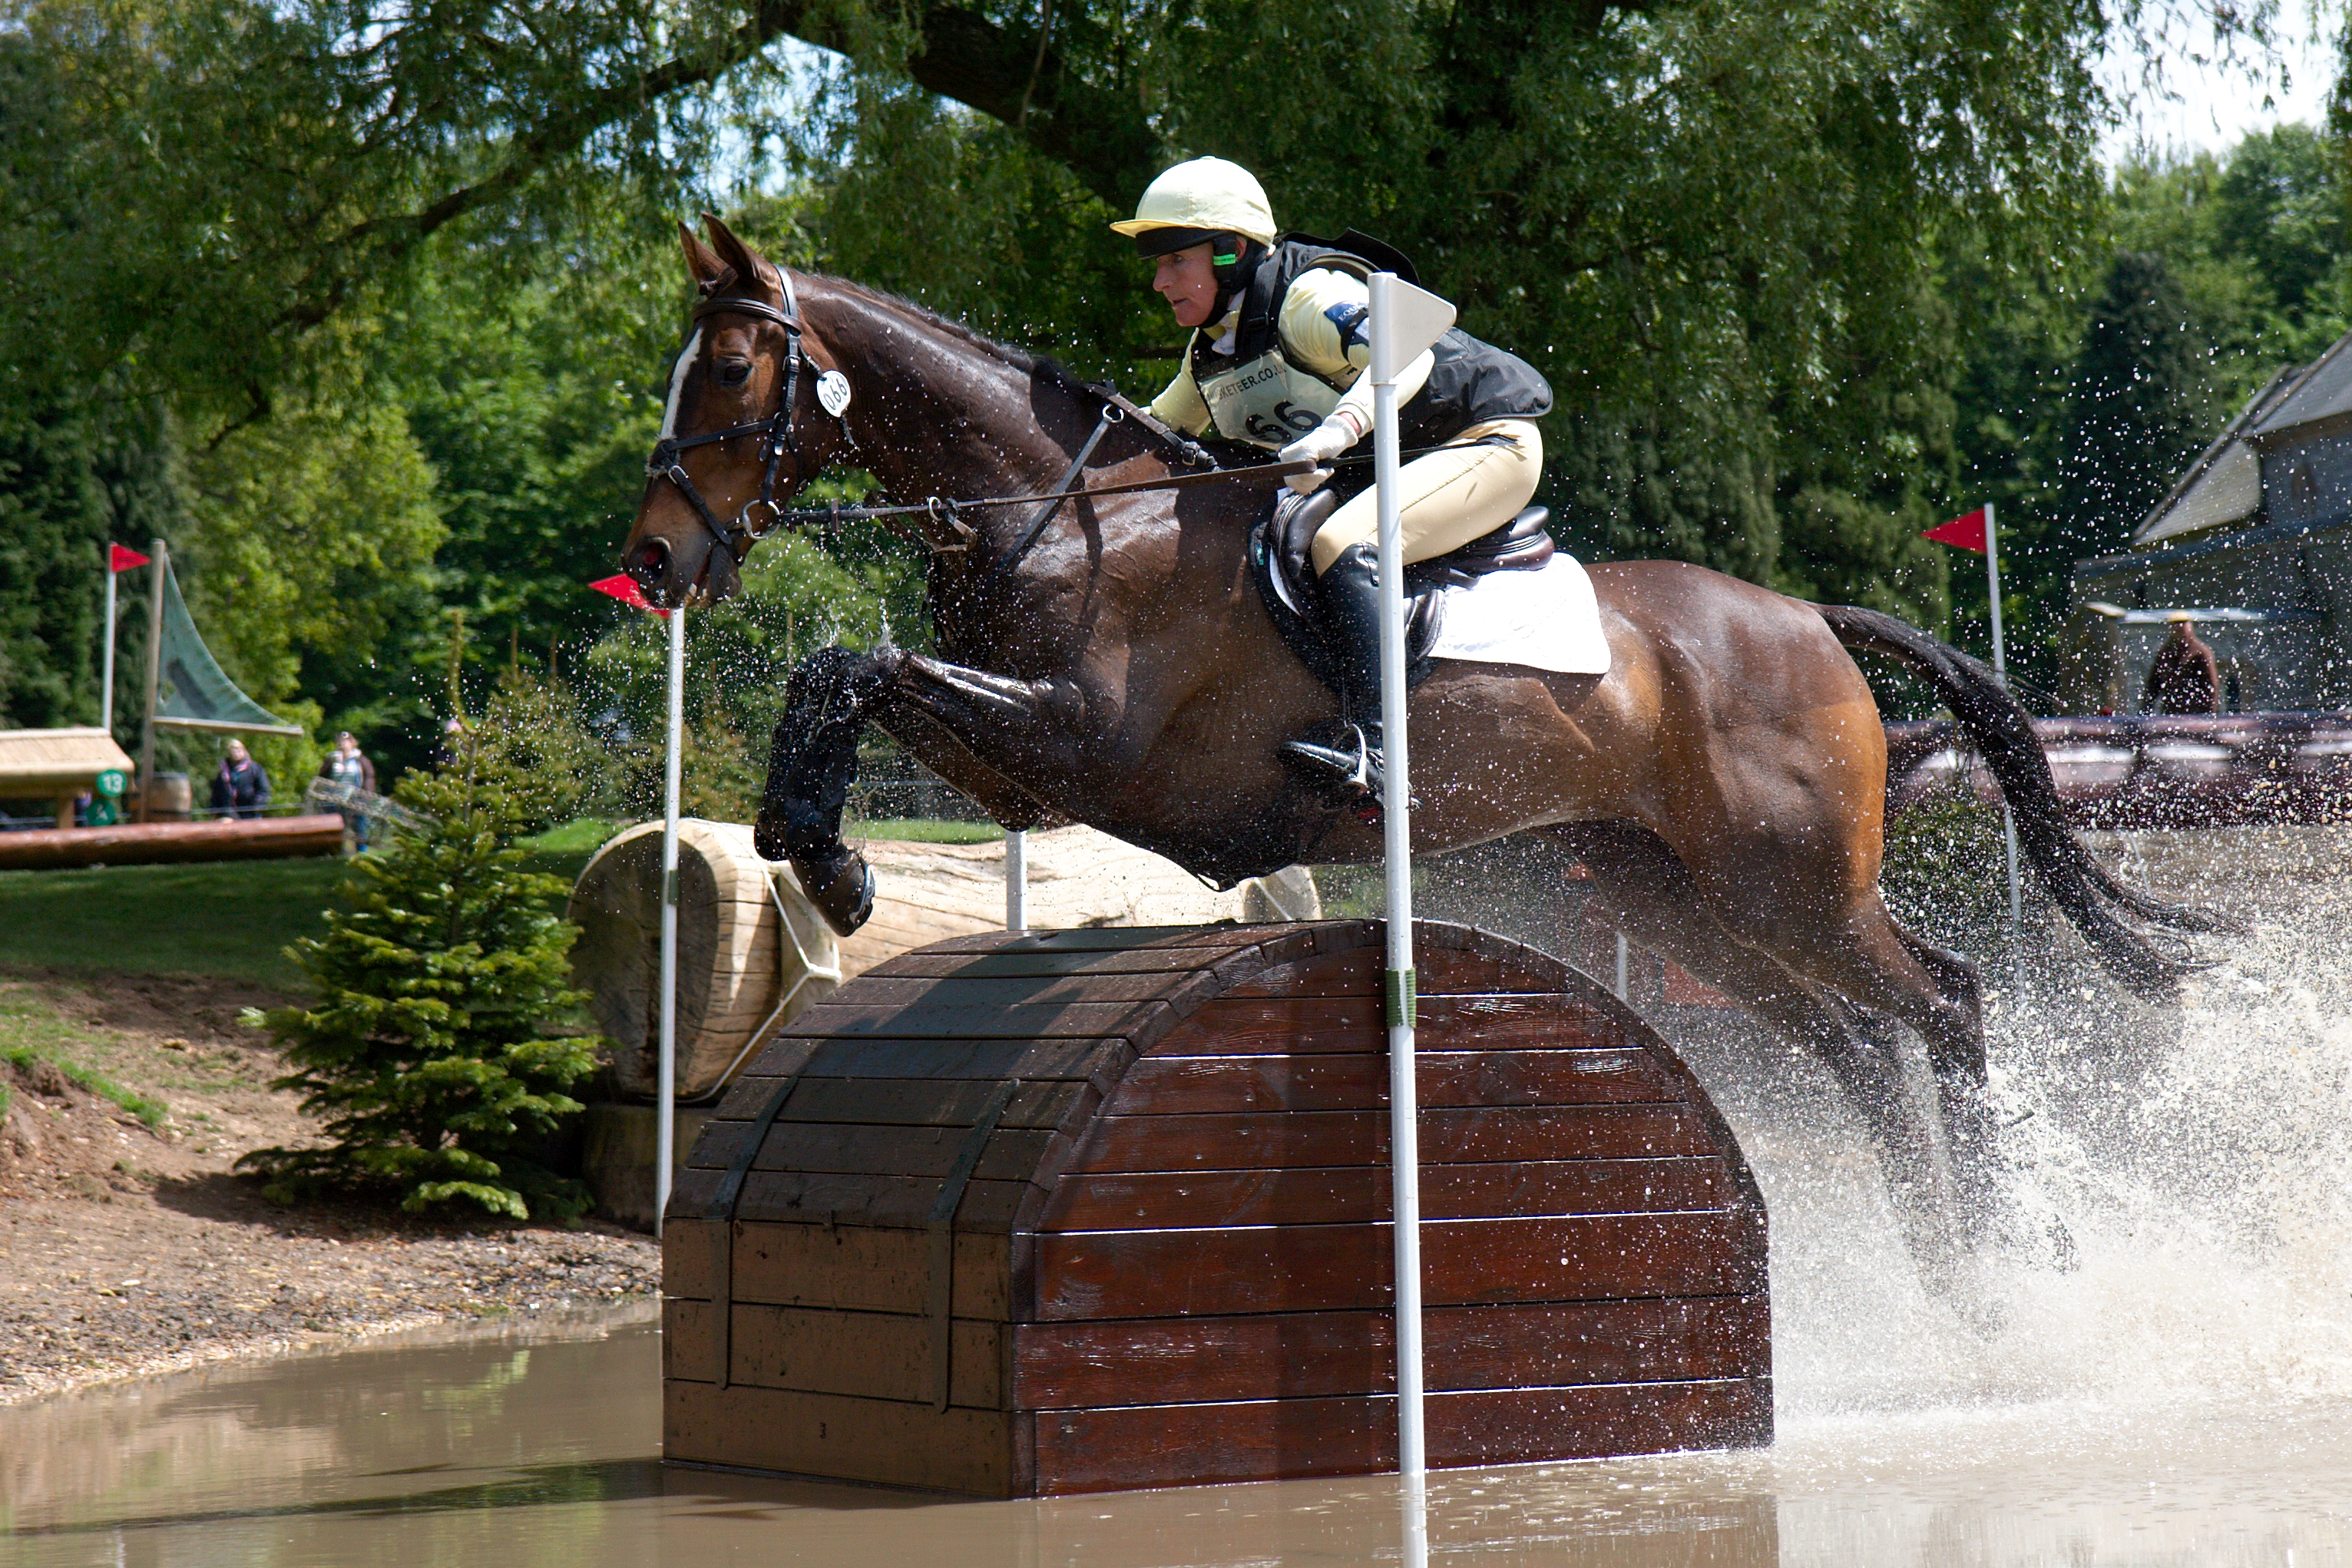 Lucinda Green and Cry Freedom at the Treasure Chests during the cross-country phase of the CIC*** competition at Houghton International Horse Trials 2013.